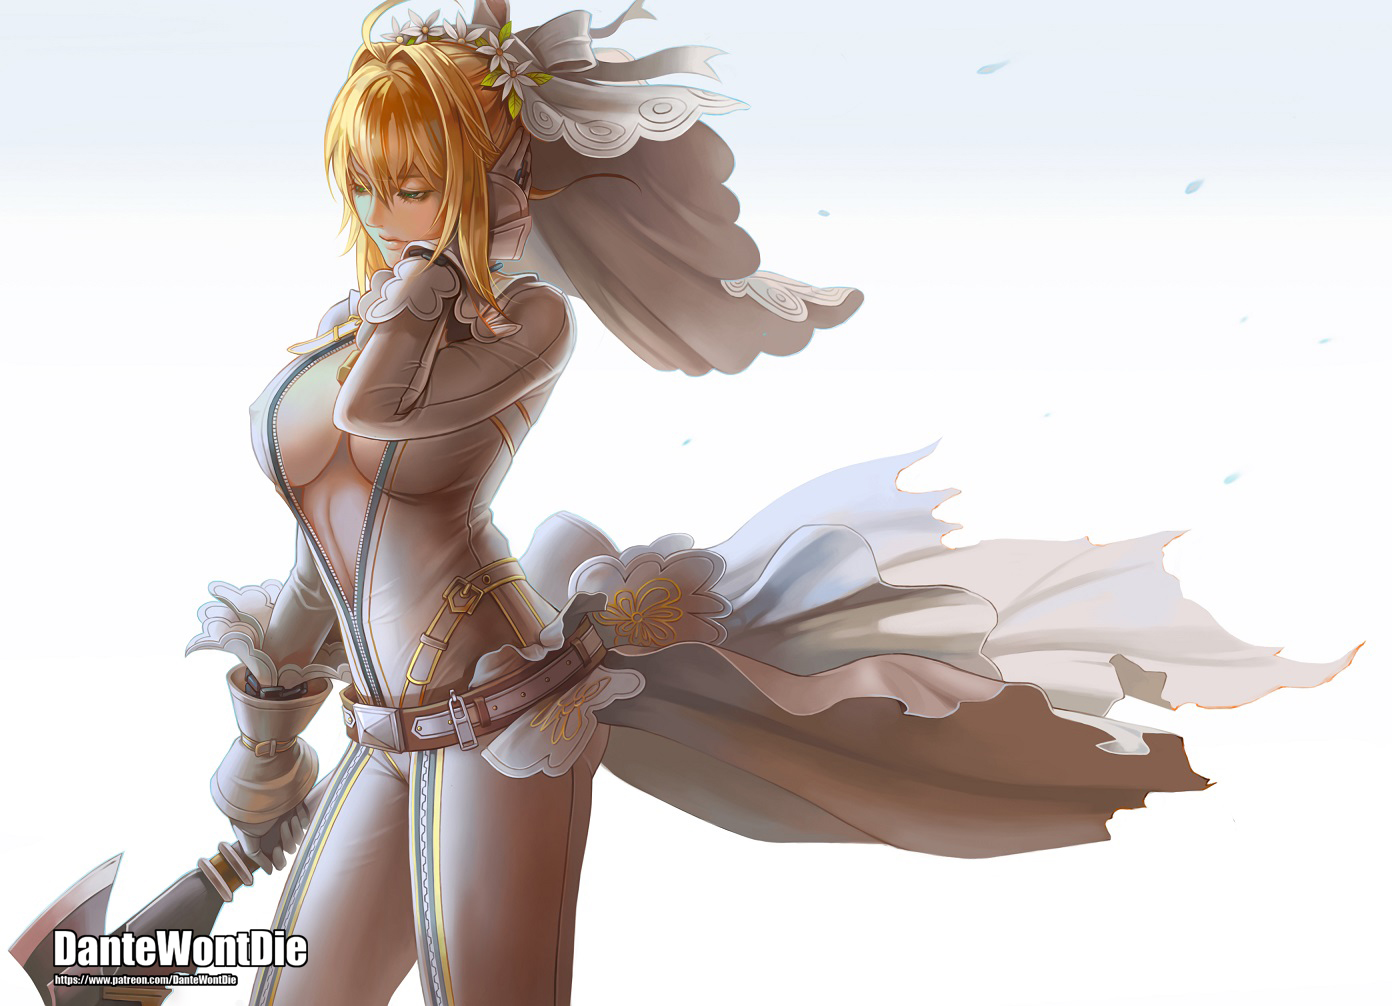 artoria_pendragon_(all) blonde_hair bodysuit breasts dantewontdie erect_nipples fate/grand_order fate_(series) gloves gradient green_eyes headdress nero_claudius_(bride) no_bra open_shirt saber sword watermark weapon white